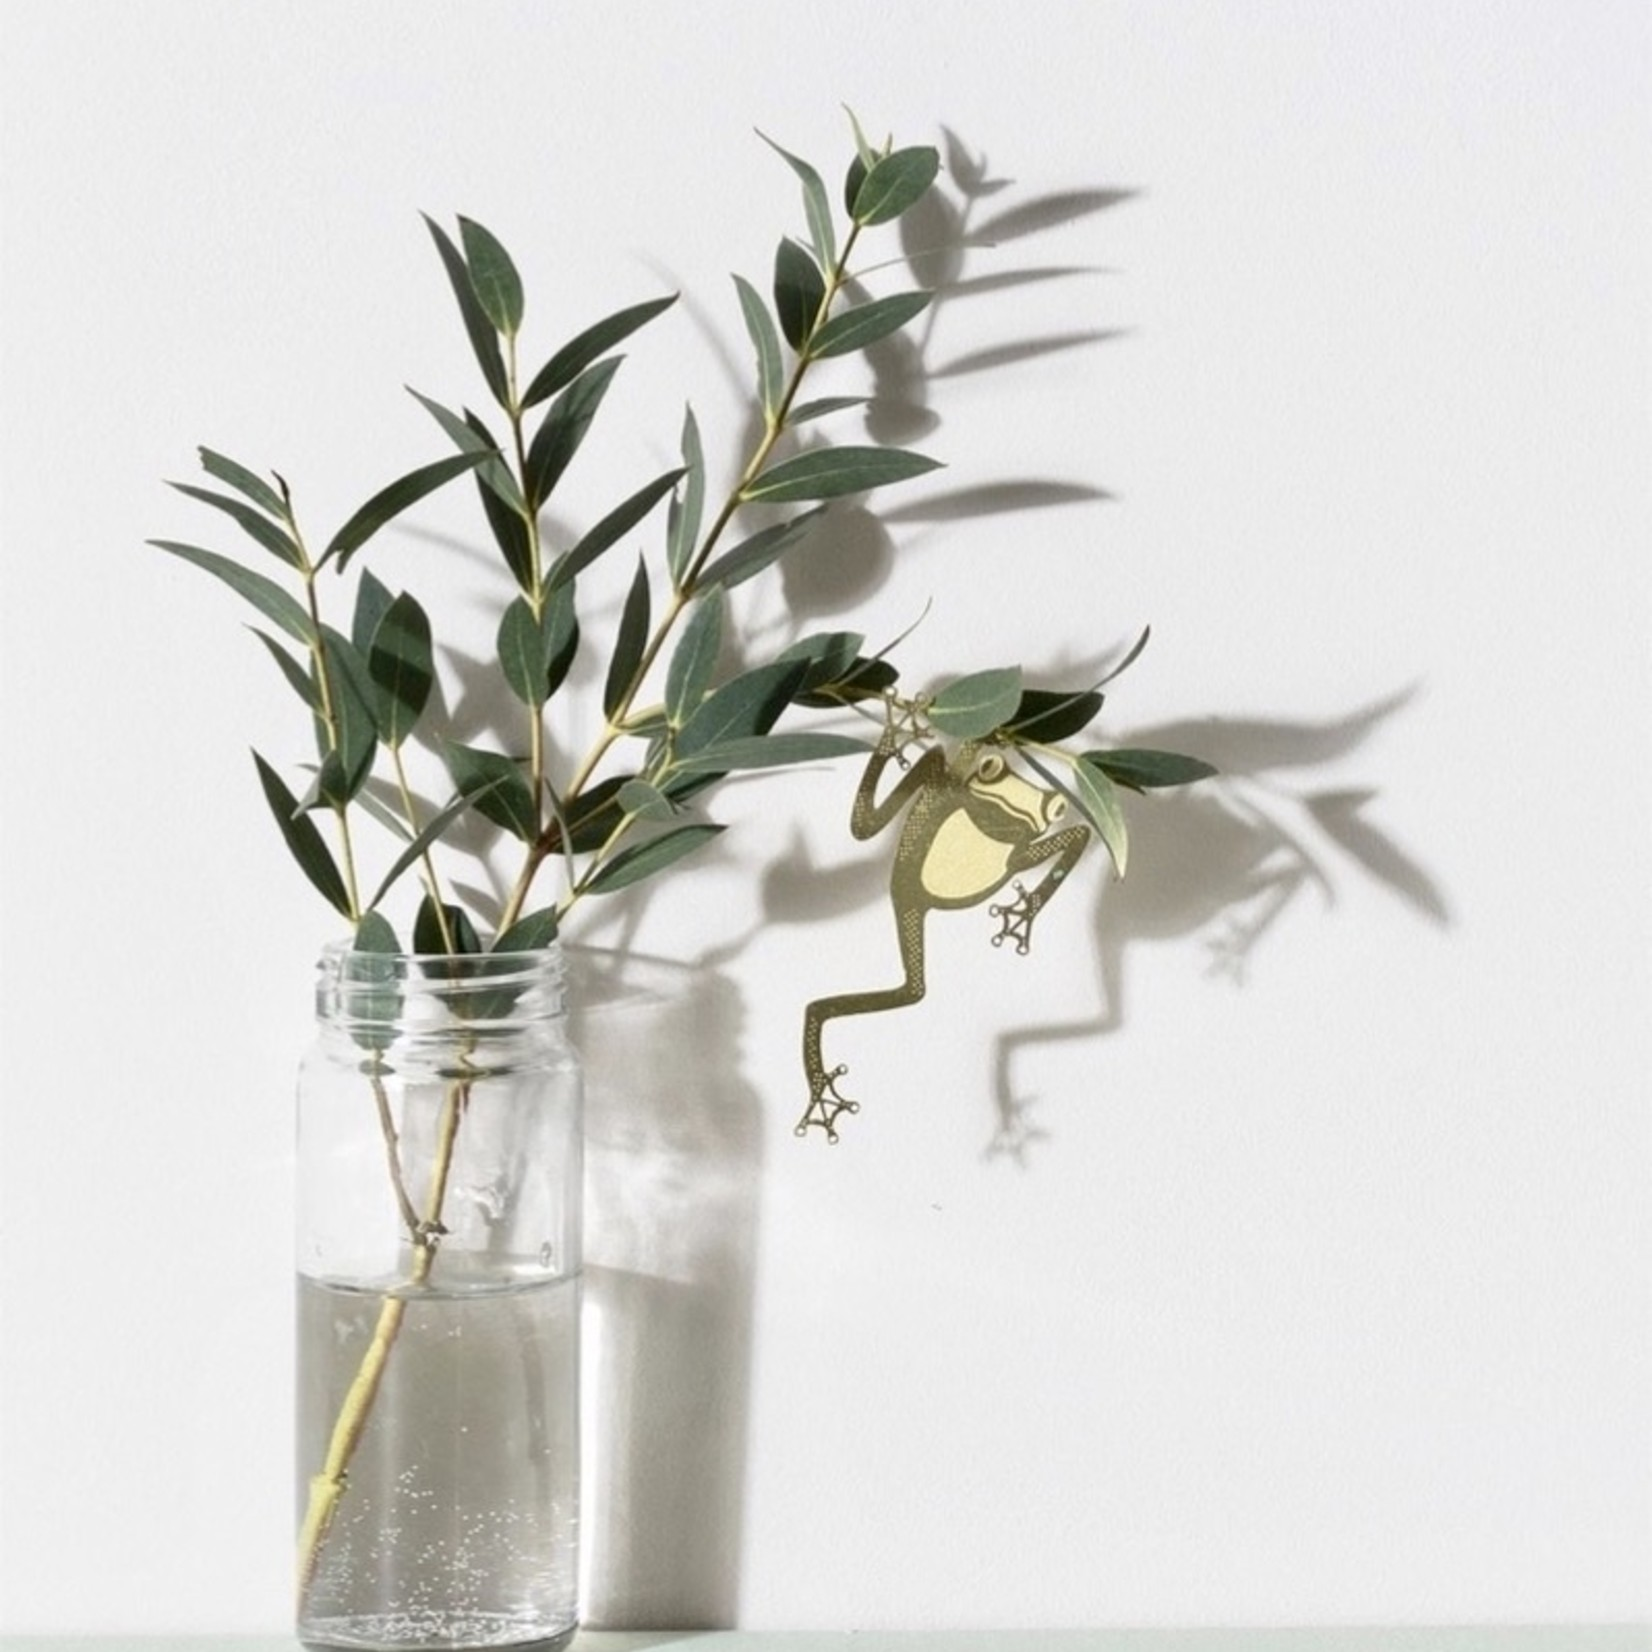 Another Studio for Design Plant Accessory: